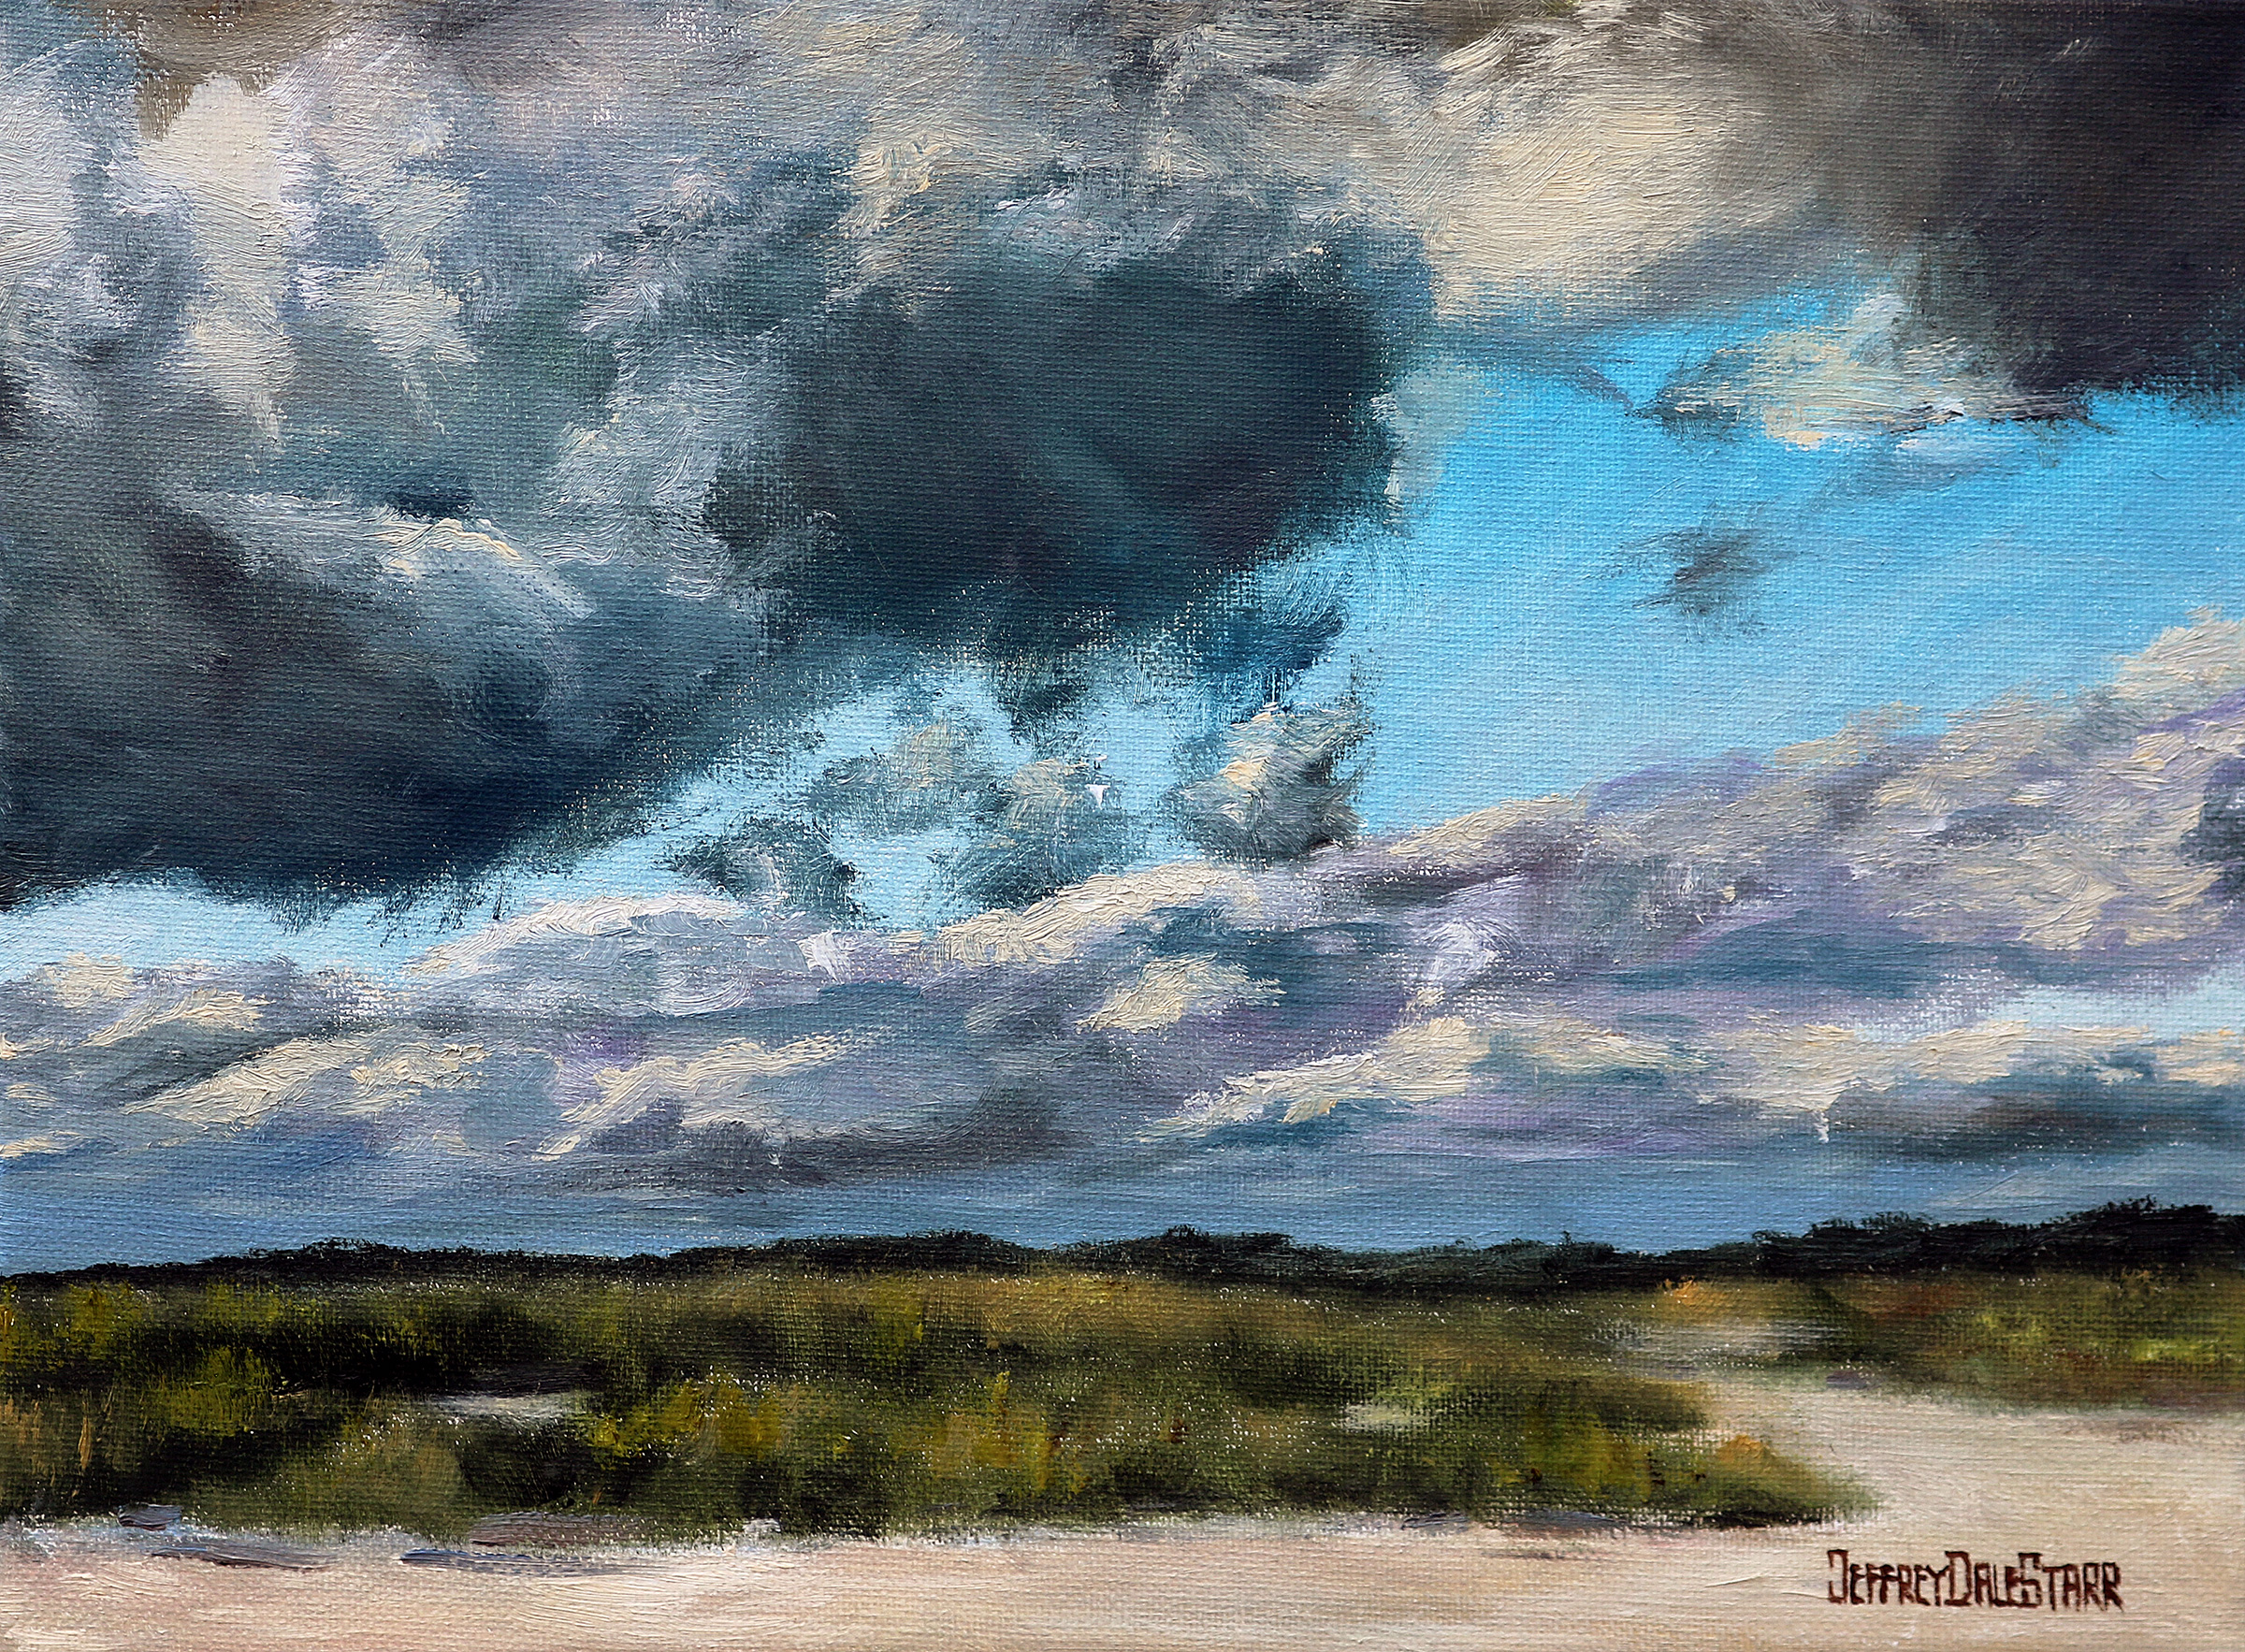 oil painting of storm rolling over beach on cape cod by american artist jeffrey dale starr